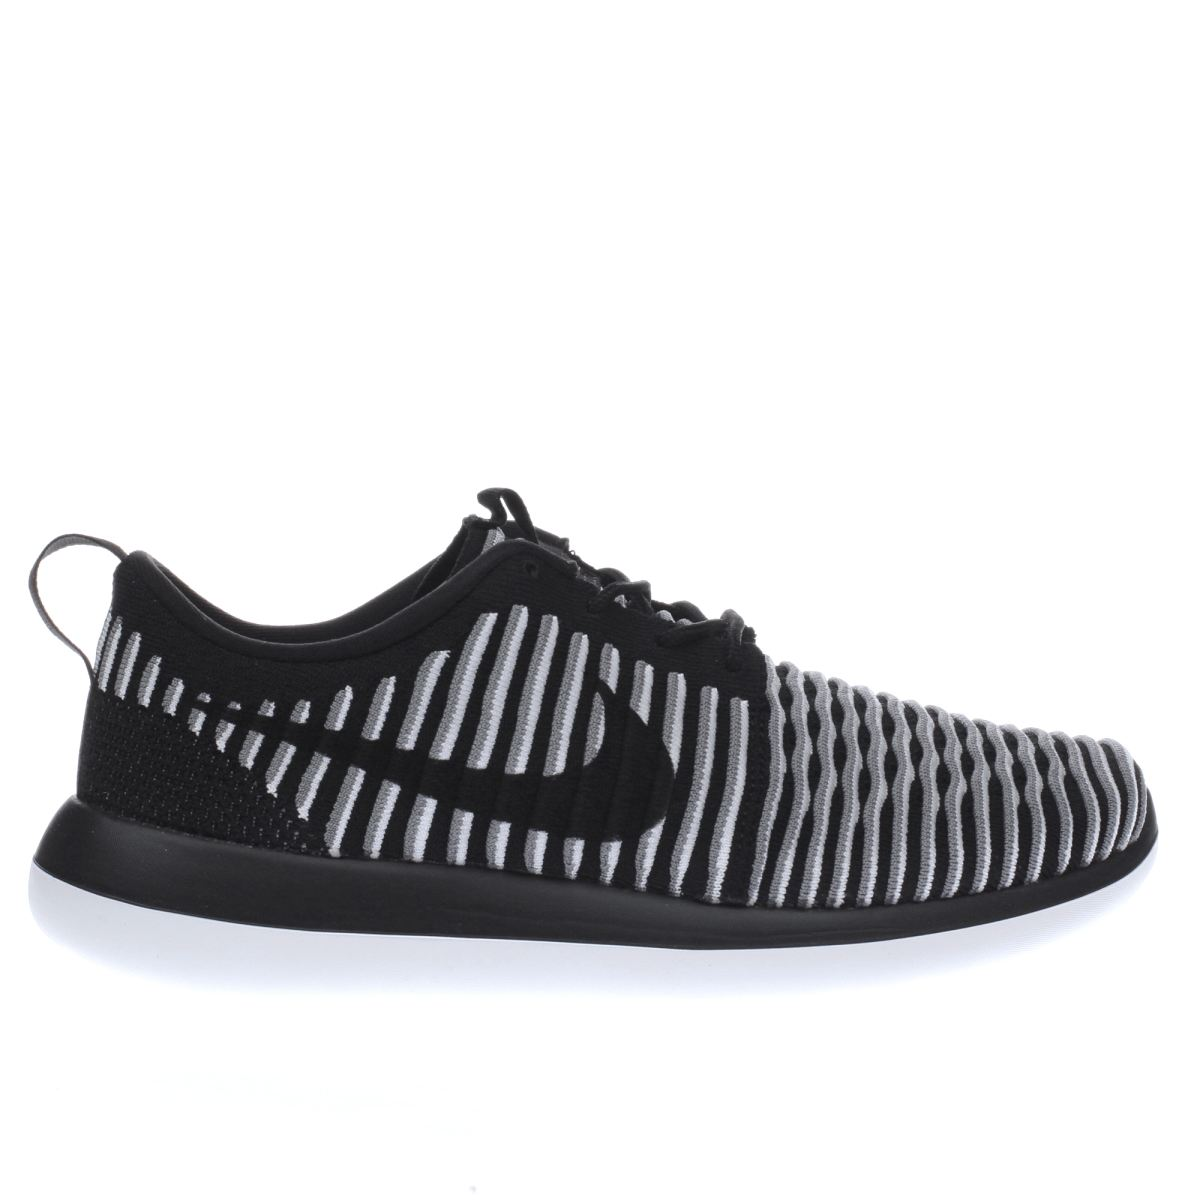 nike black & white roshe two flyknit trainers